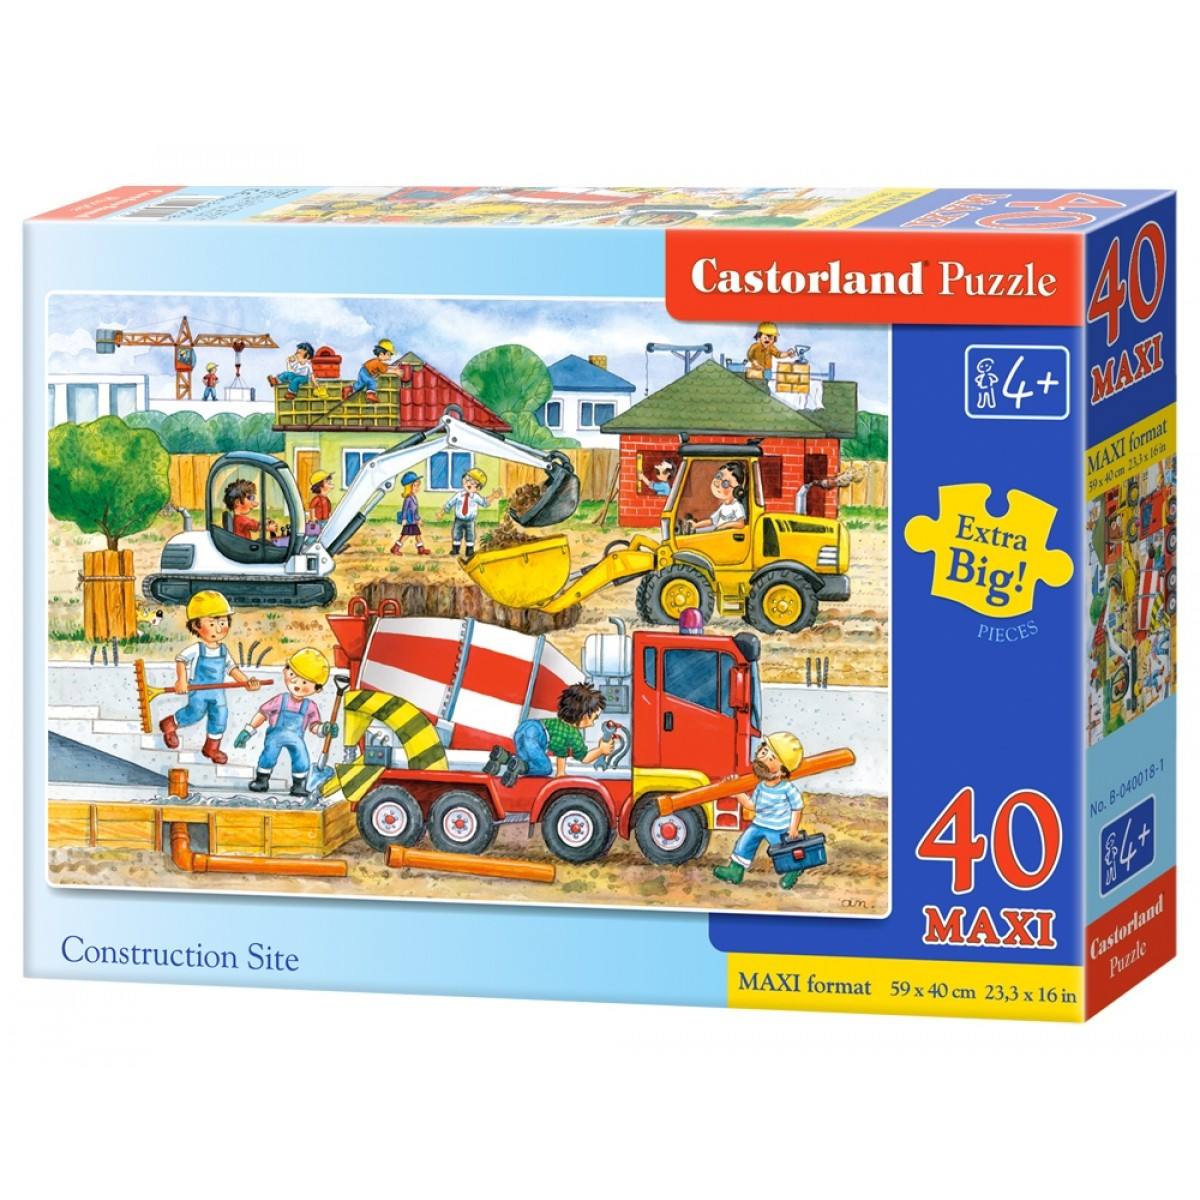 Castorland Construction Site Maxi Puzzle 40pc